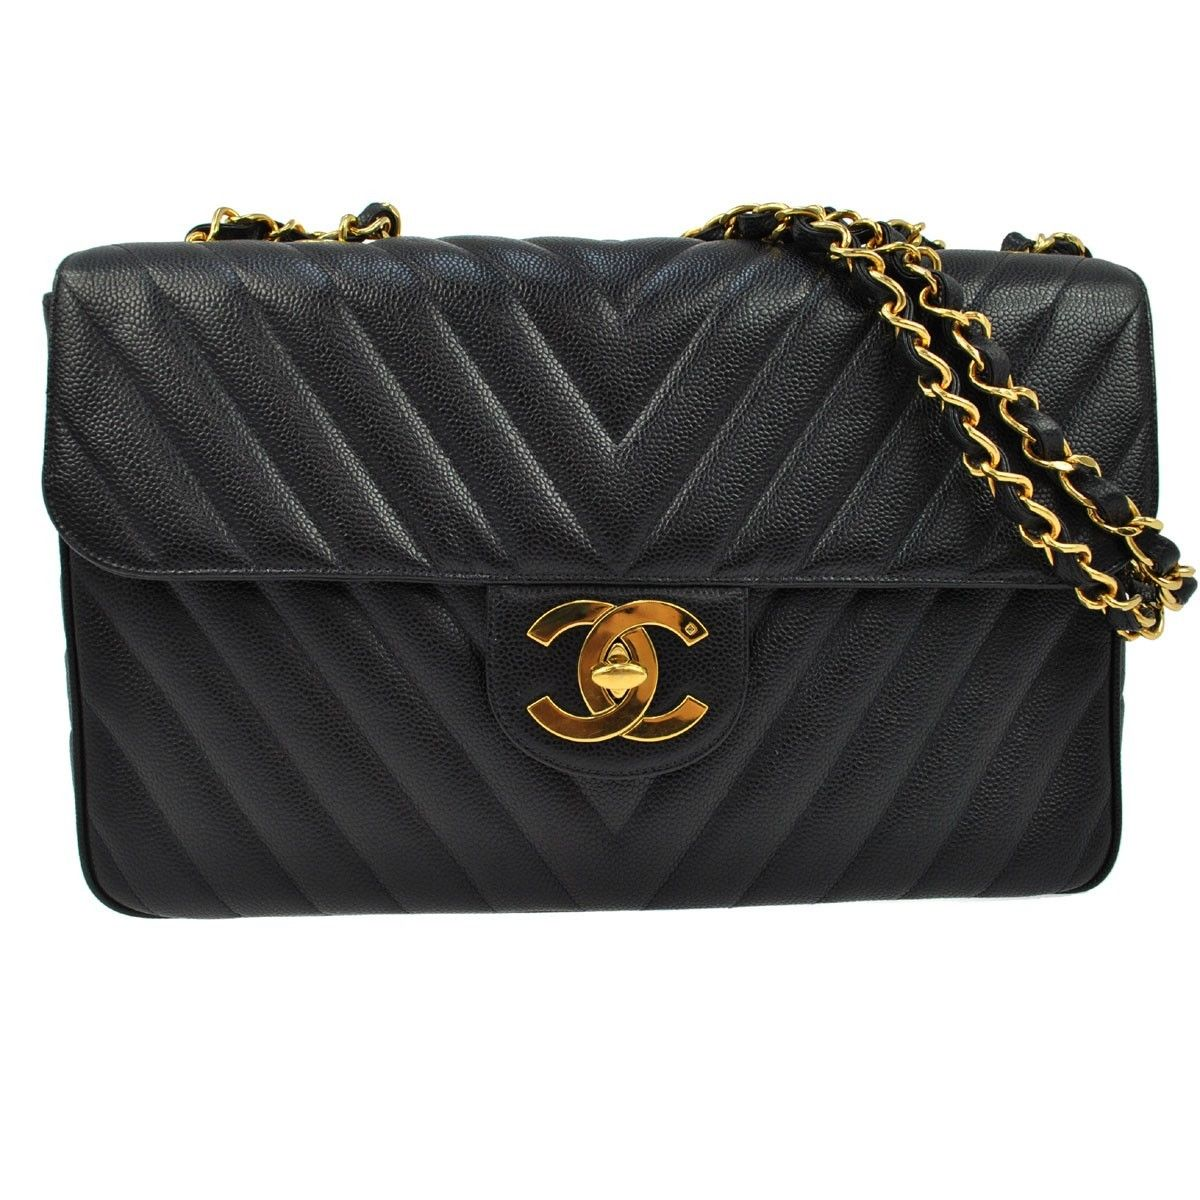 5a34ee16c771 Rare Chanel Xl Jumbo Black Chevron flap bag with GHW .